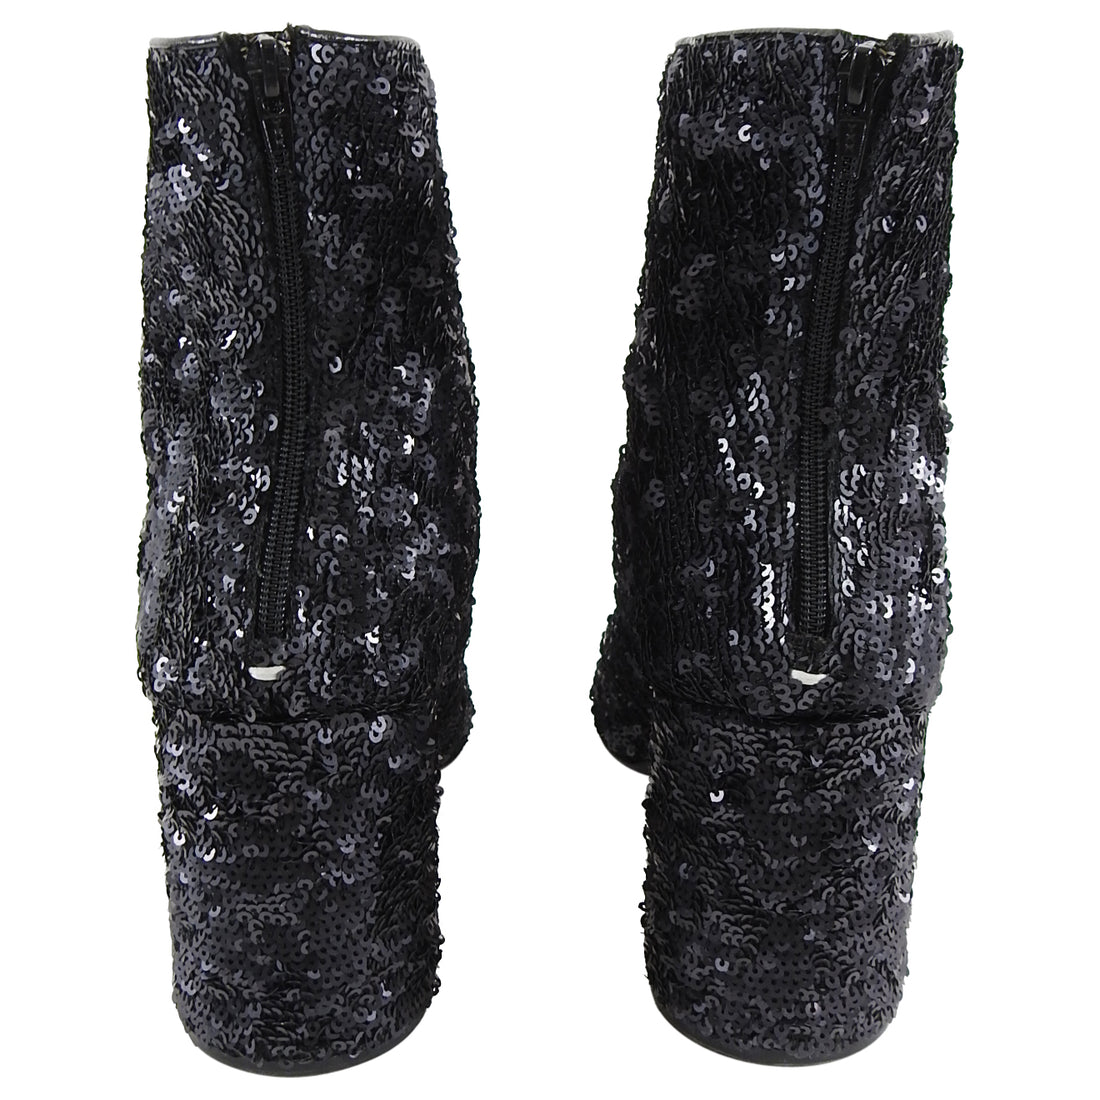 Maison Martin Margiela Black Sequin Disco Ankle Boots - 40